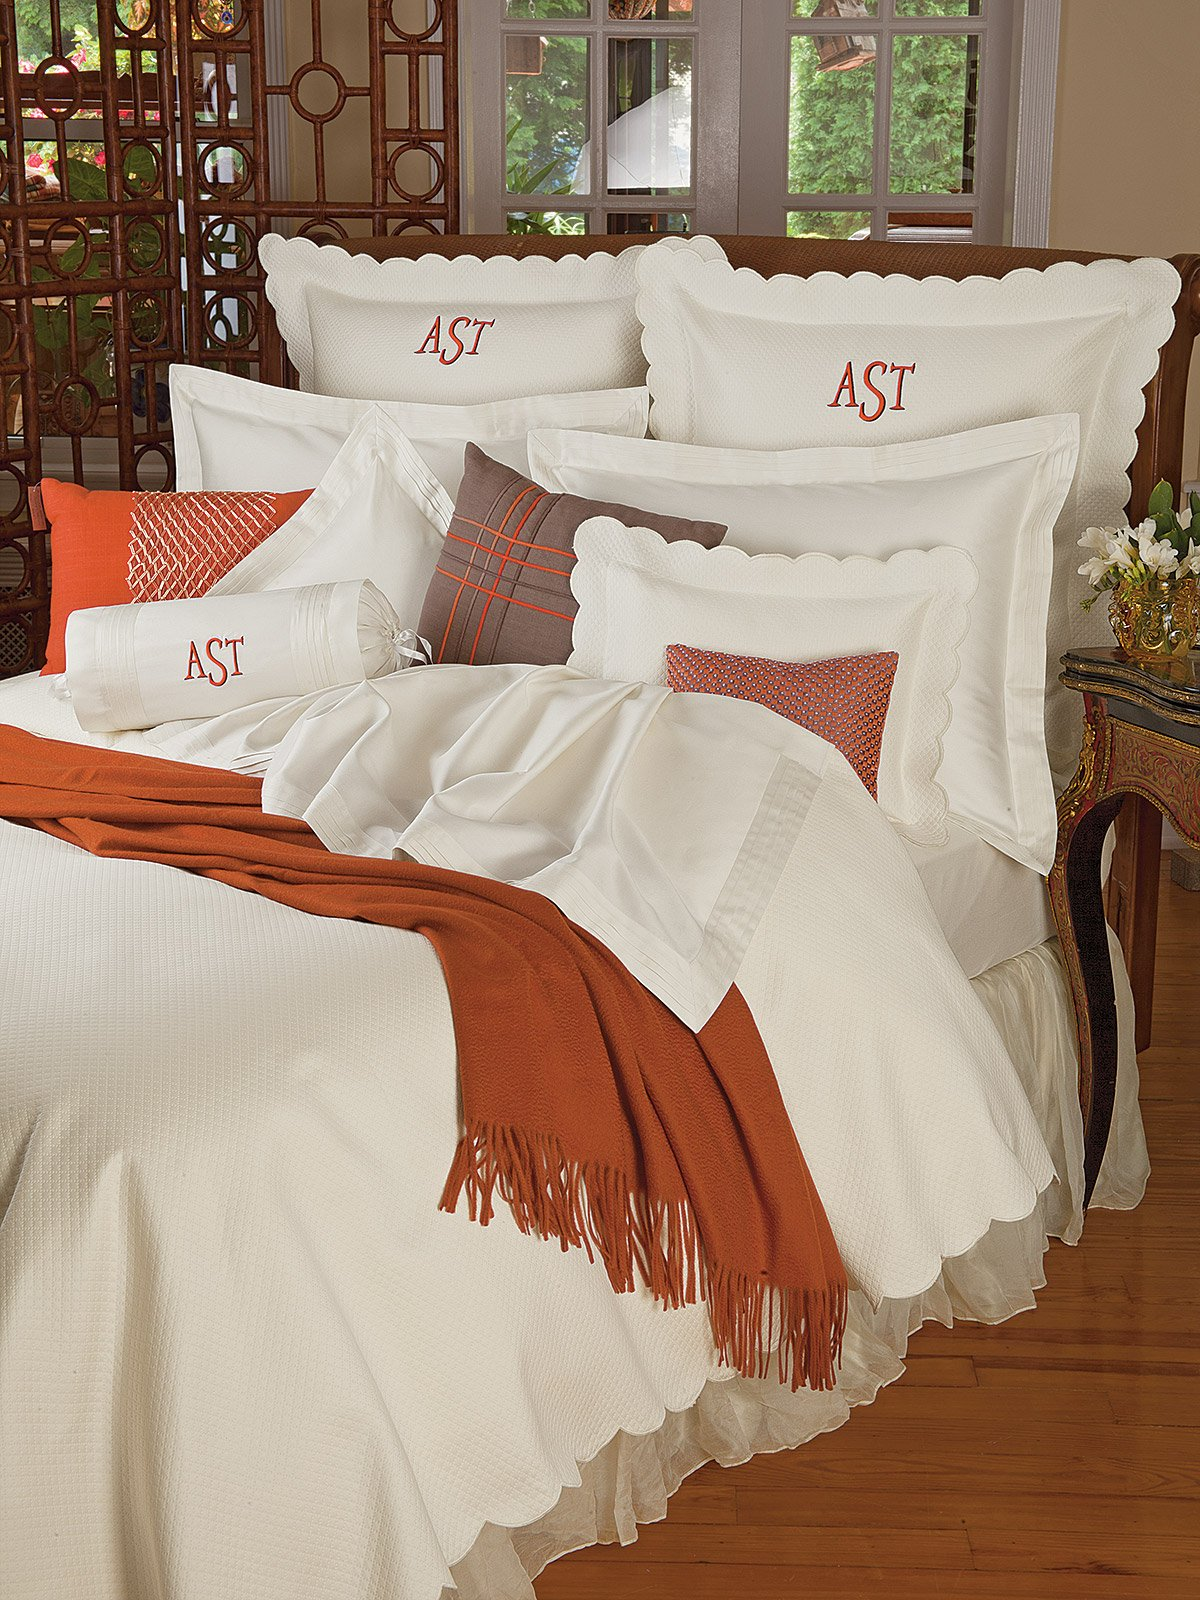 Color Coordinating with Blanket Covers, Duvet Covers, Shams and Decorative Pillows - Schweitzerlinen